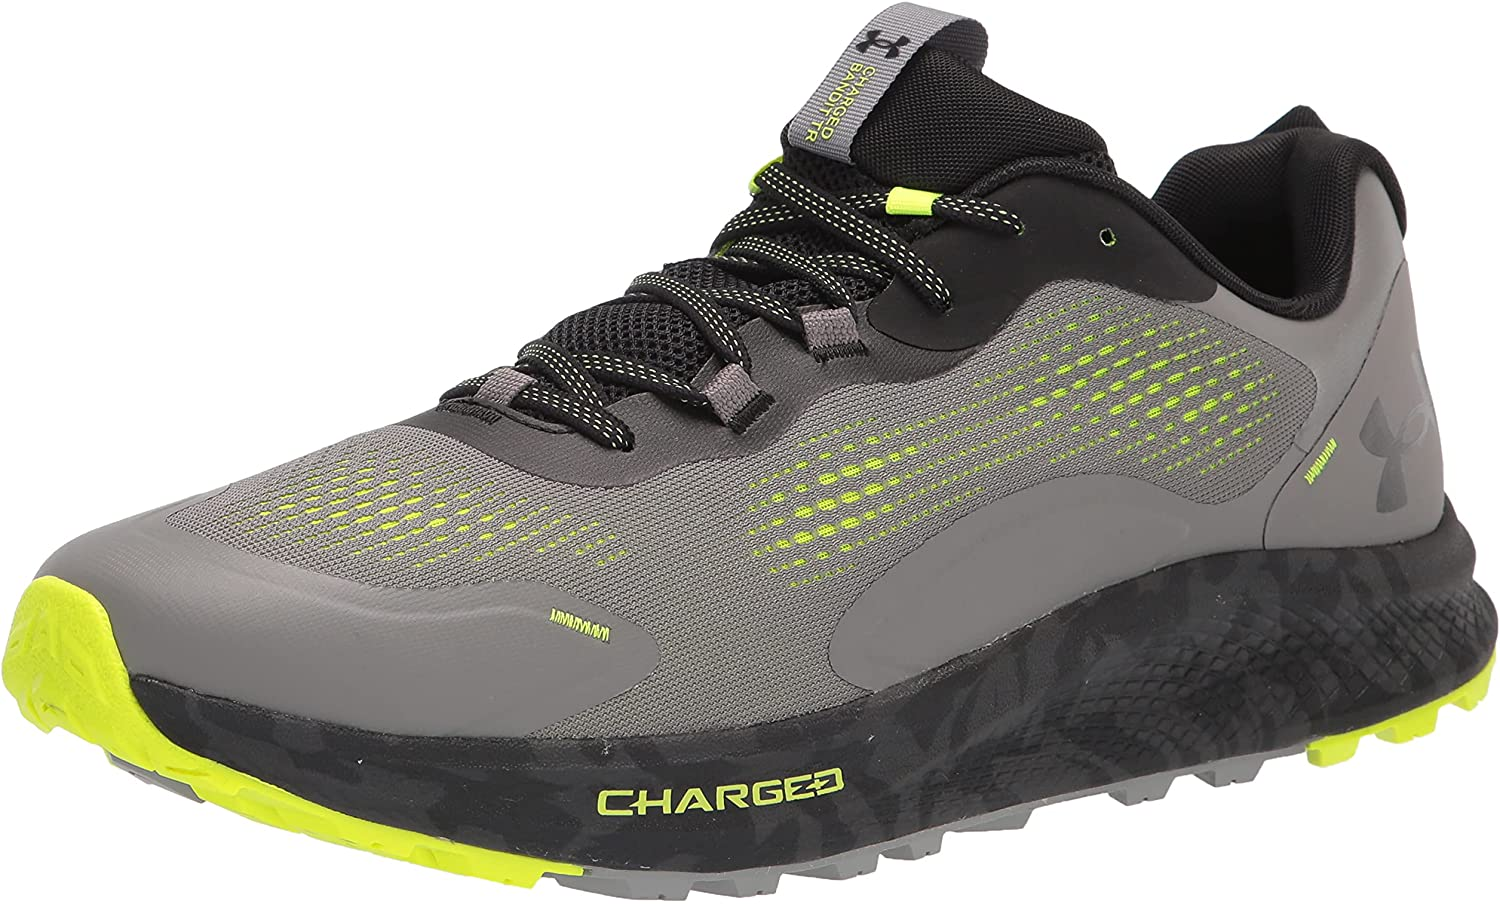 Inventory cleanup Luxury selling sale Under Armour Men's Charged Shoe 2 Running Bandit